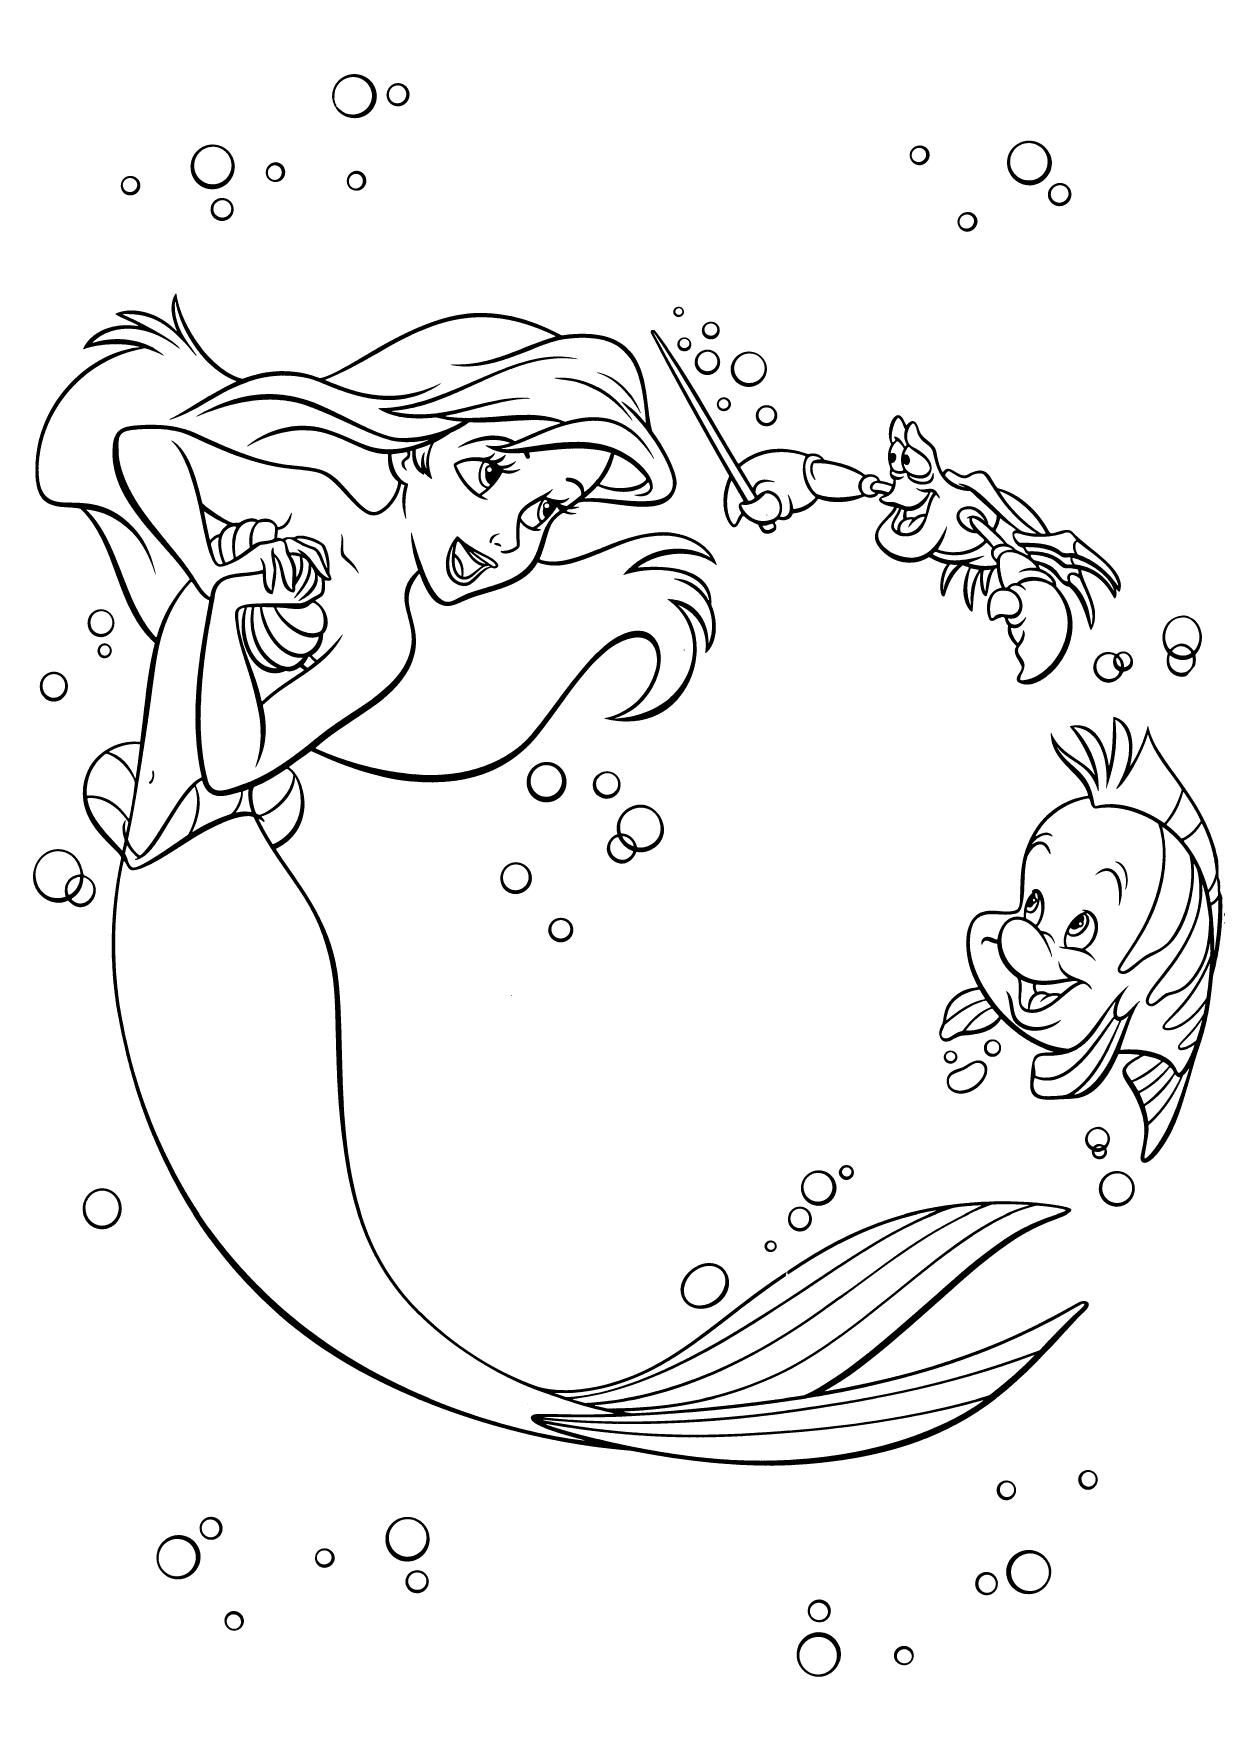 Coloring Pages ~ Free Printable Coloring Books Pdf Kids Stress - Free Printable Coloring Books Pdf